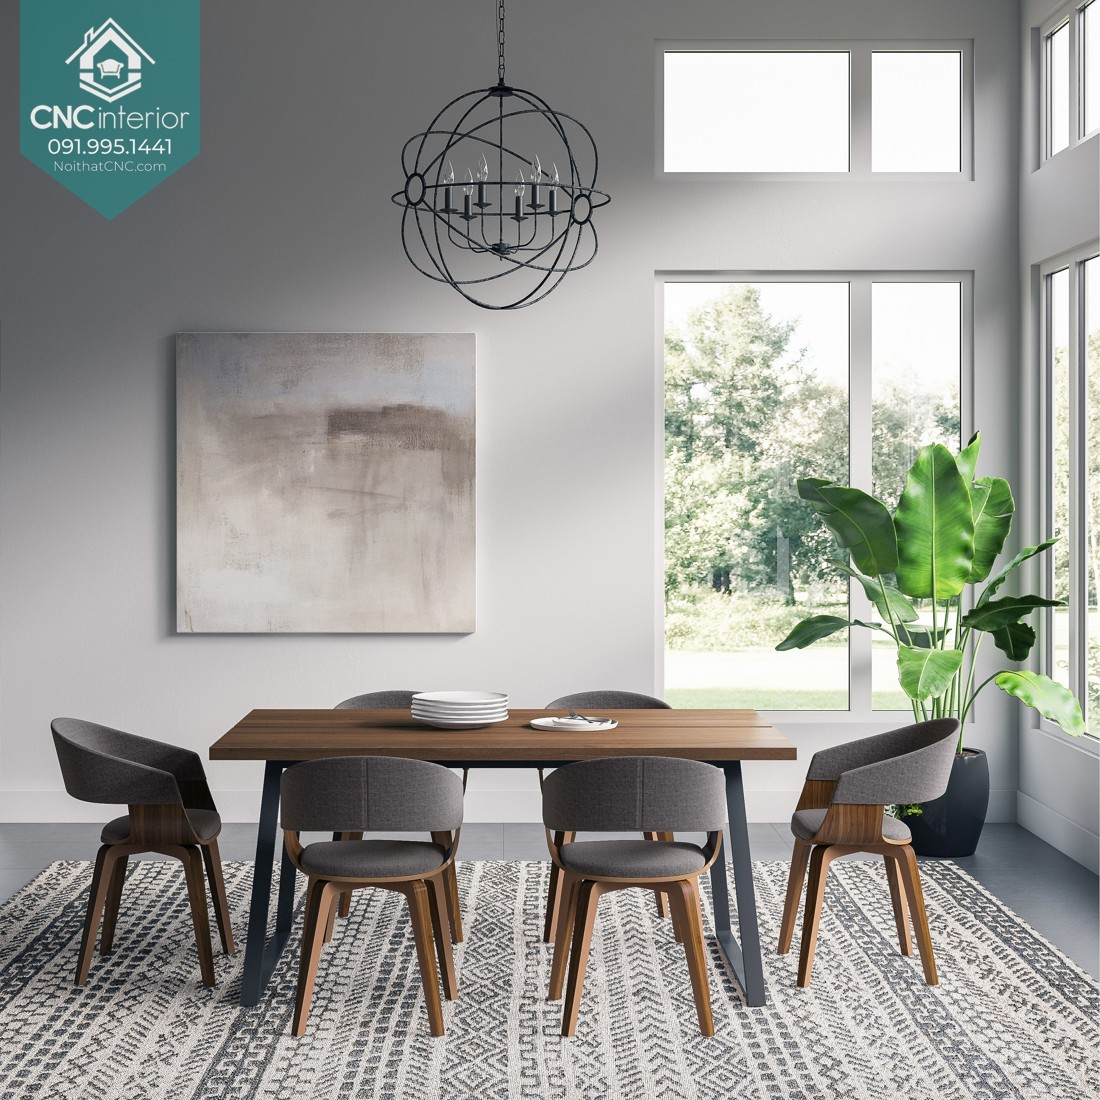 CNC's dining room sets for sale at affordable prices 16